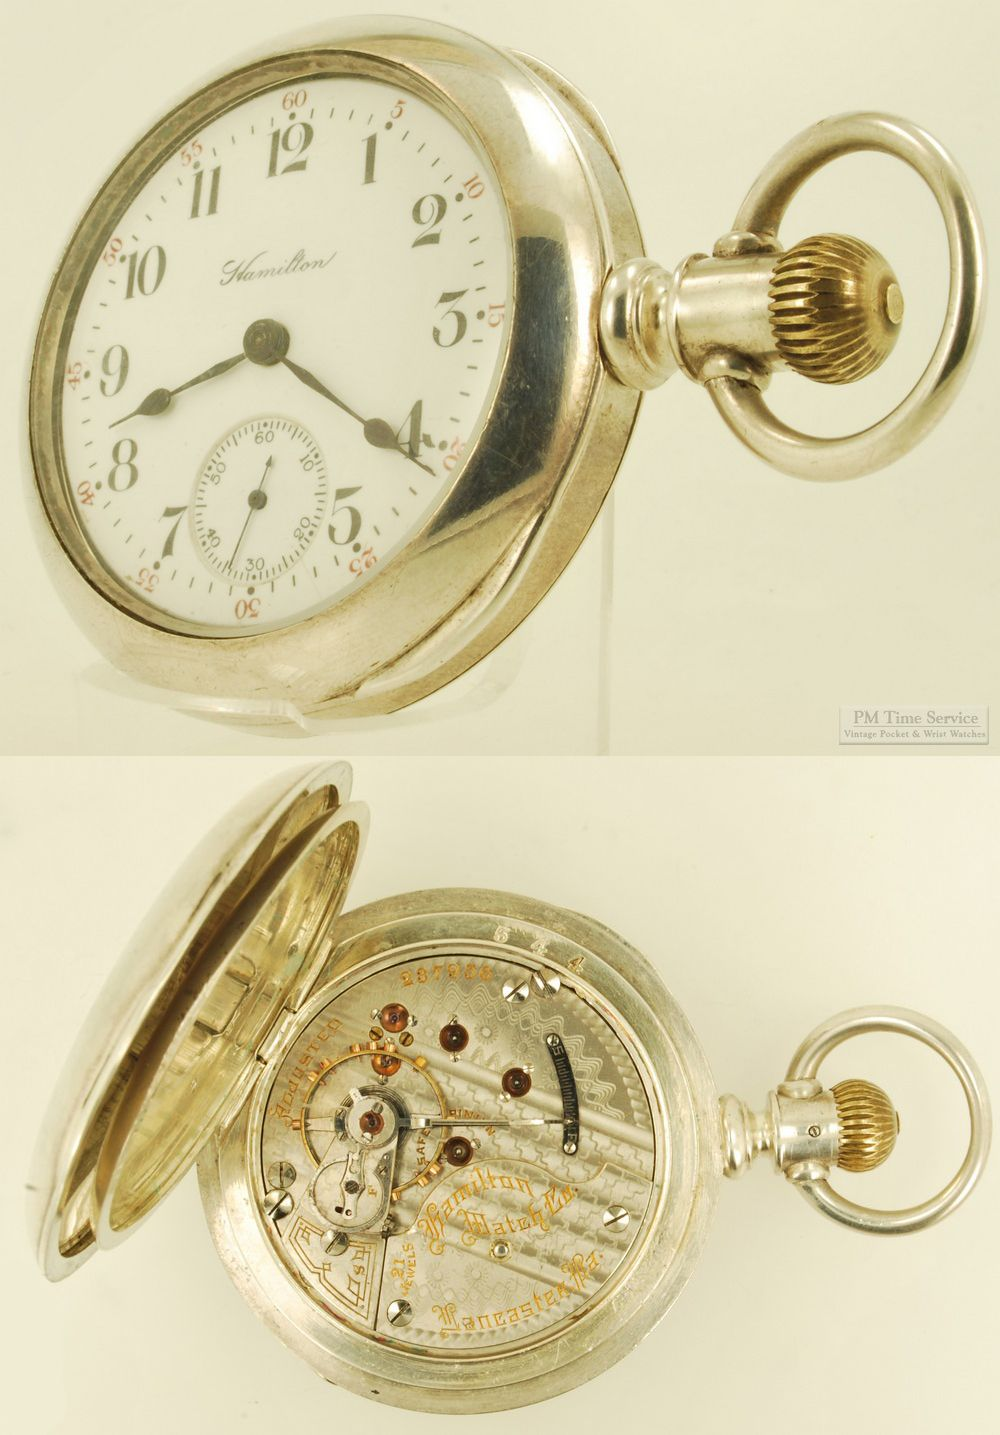 30ac7fbf2 A family-operated business of years offering a large selection of vintage  pocket watches, wrist watches, and related accessories for gentlemen and  ladies.